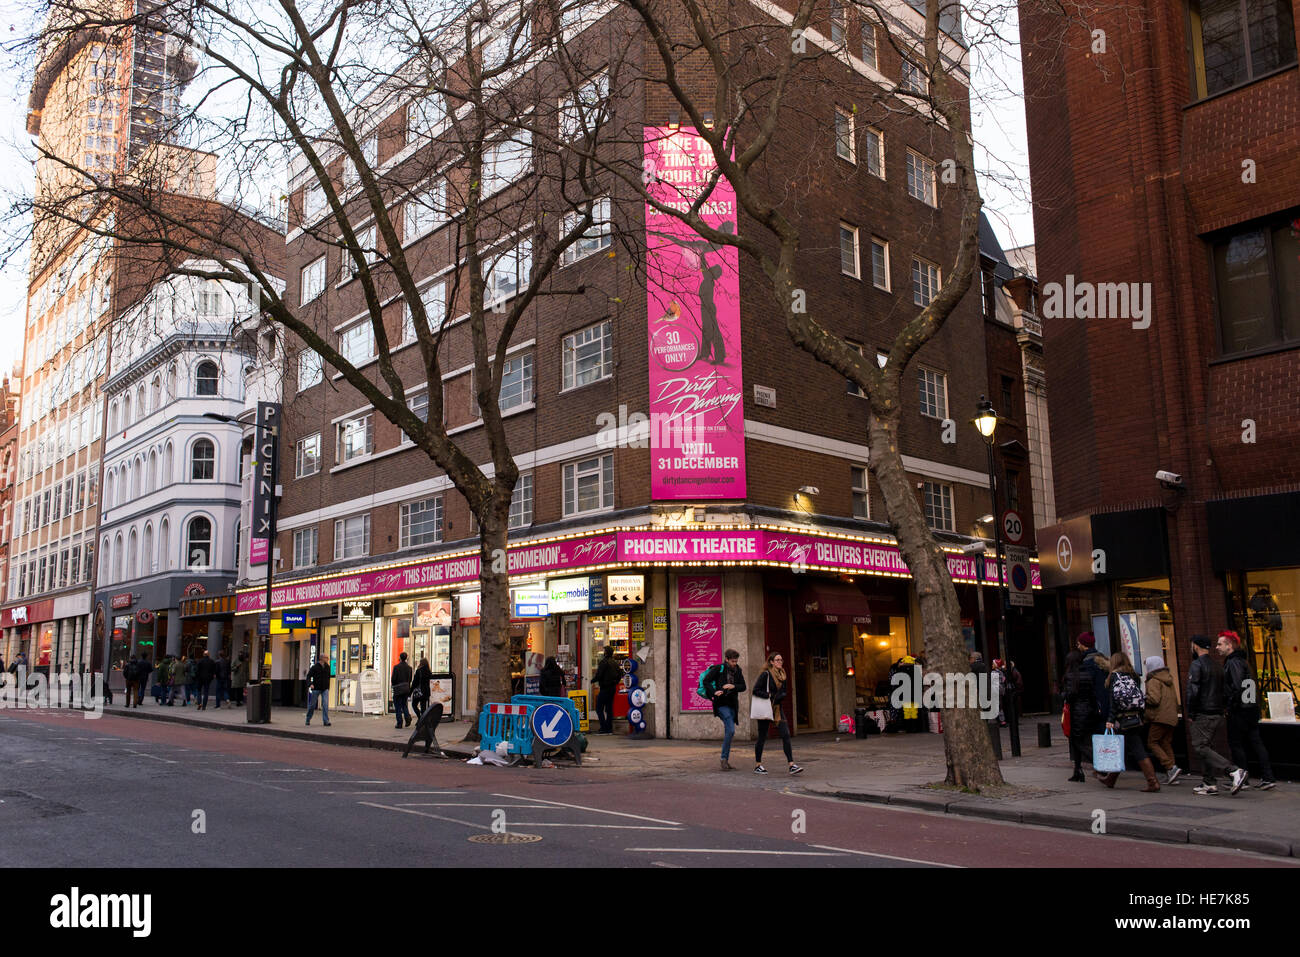 Street view of Phoenix Theatre in Charing Cross Road, Soho, London UK. Now playing the UK tour of Dirty Dancing - Stock Image